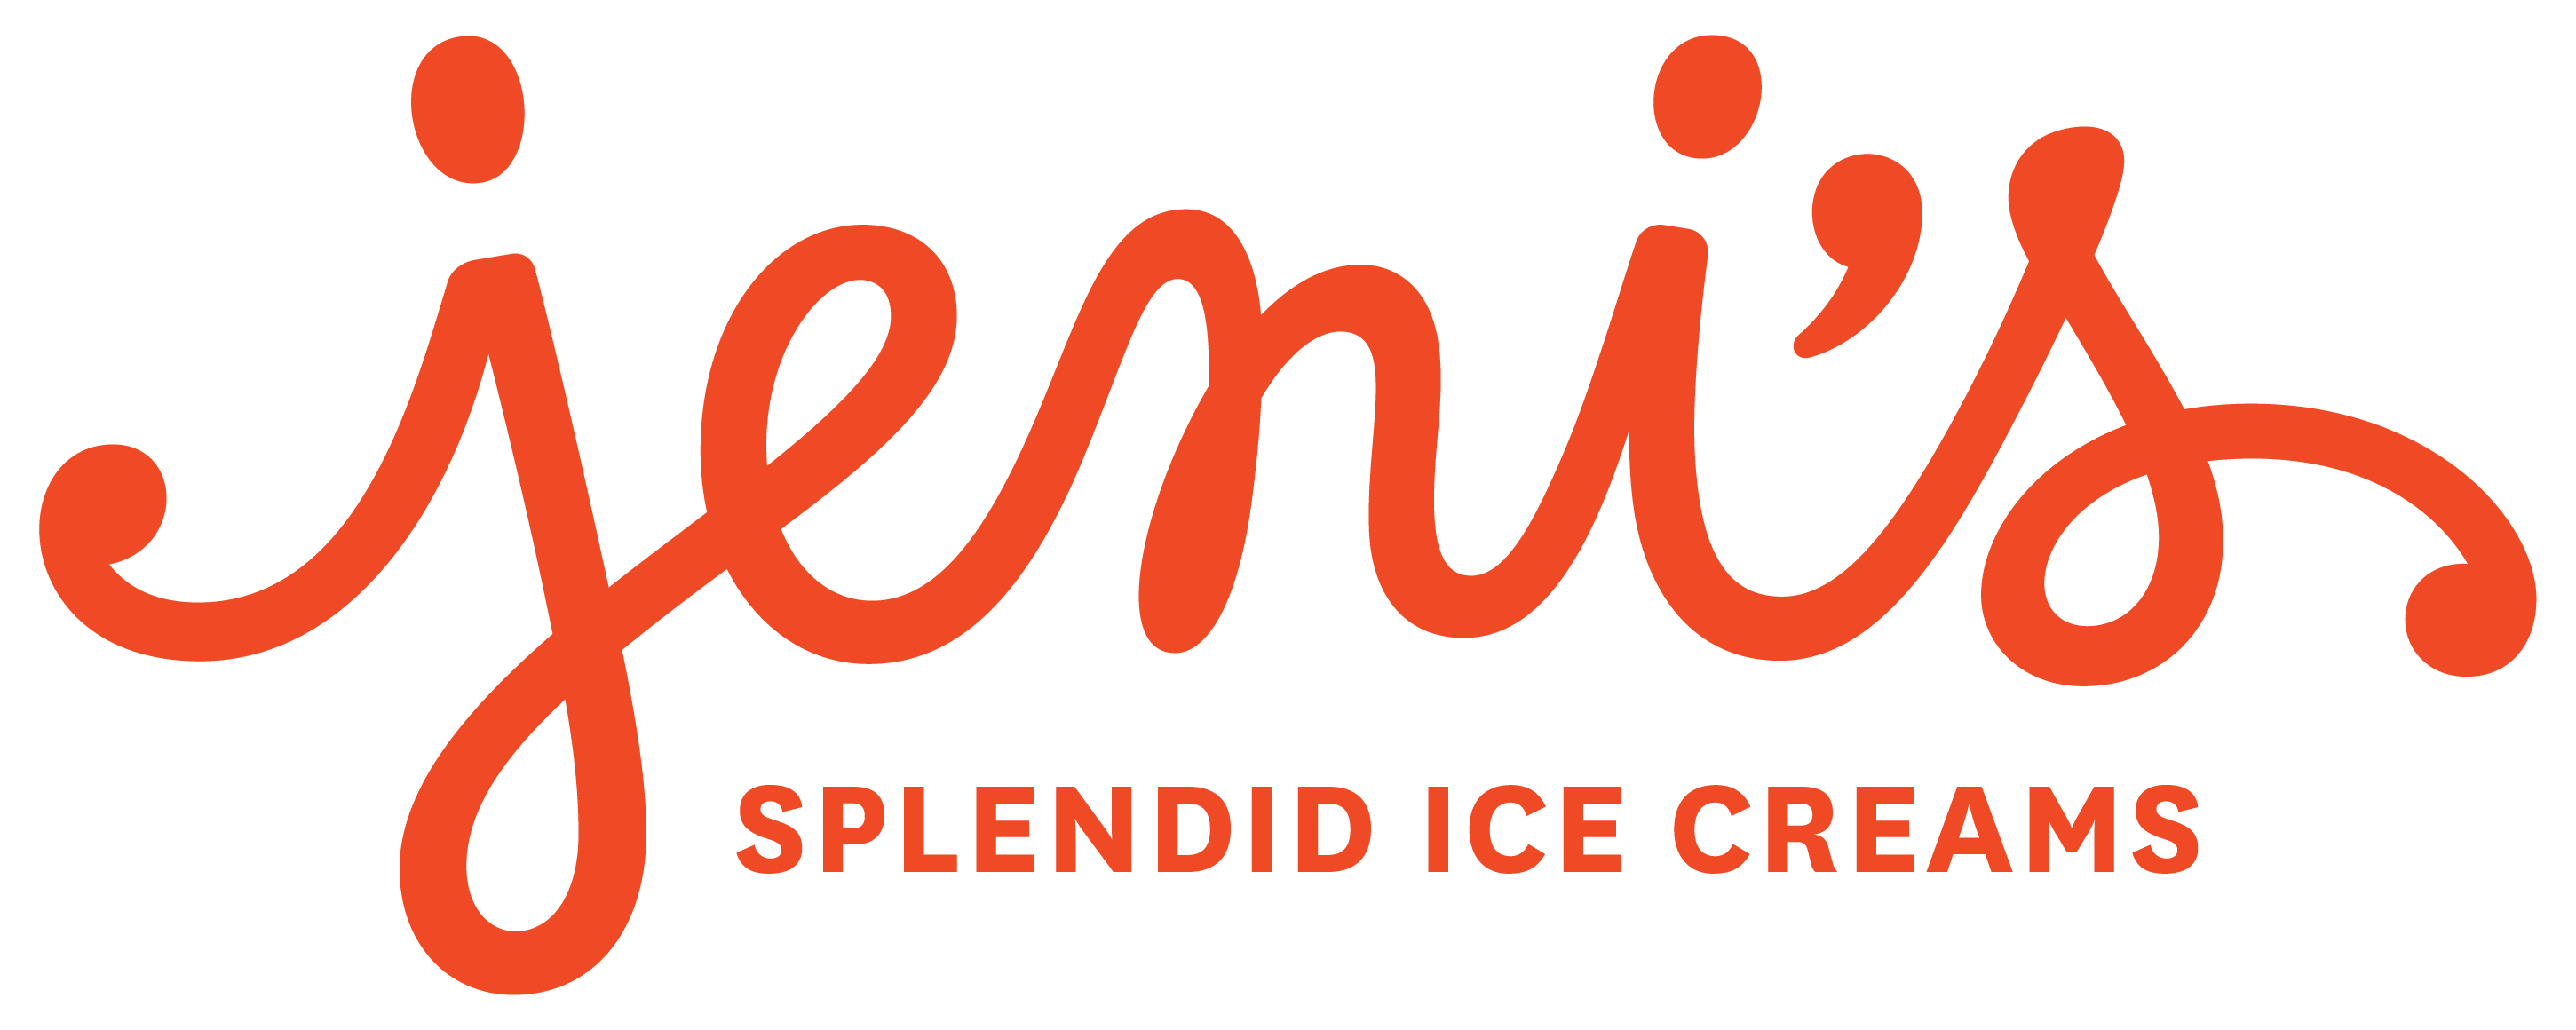 Jeni's Splendid Ice Cream - Logo